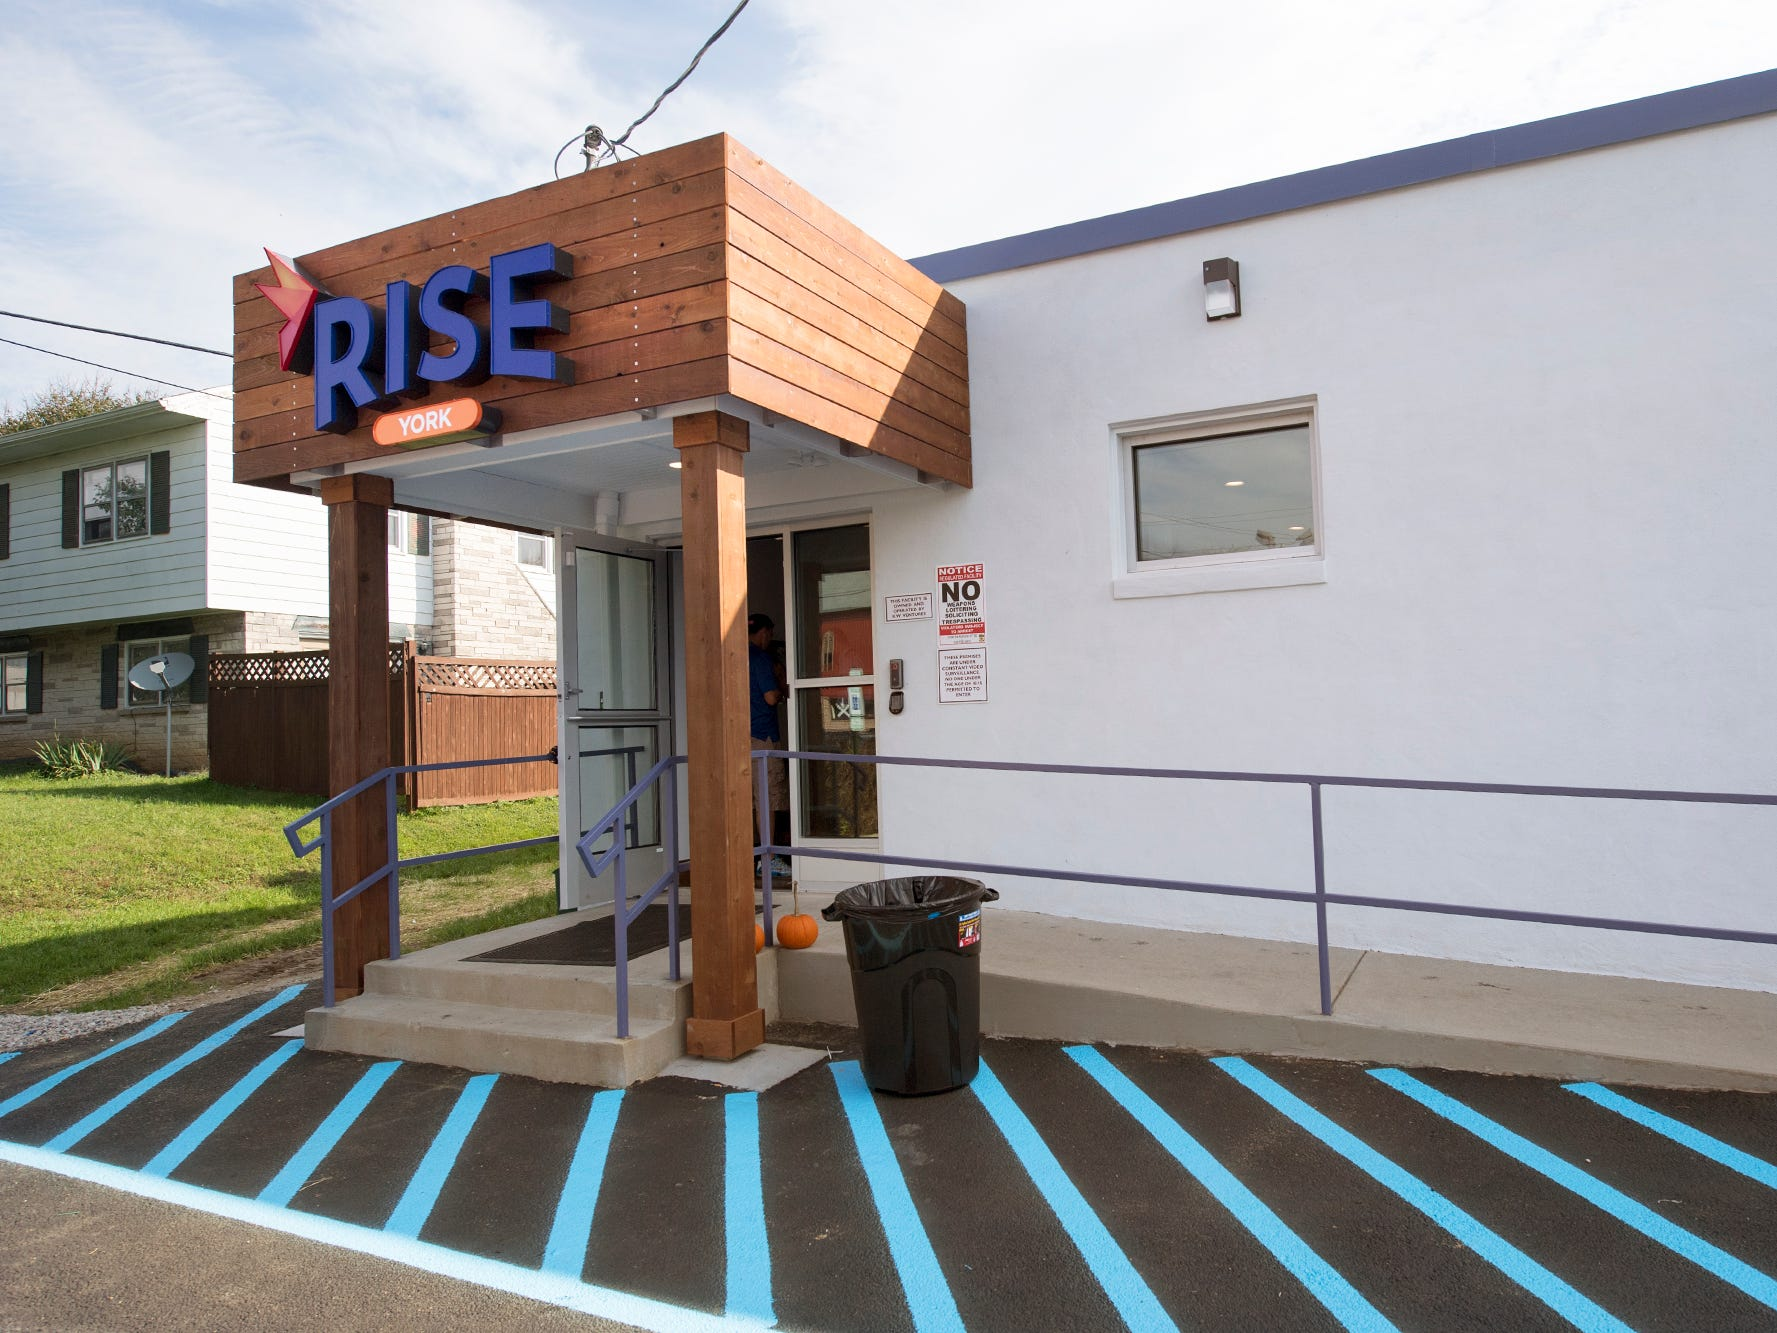 The Rise medical marijuana dispensary in West Manchester Township will open Friday.